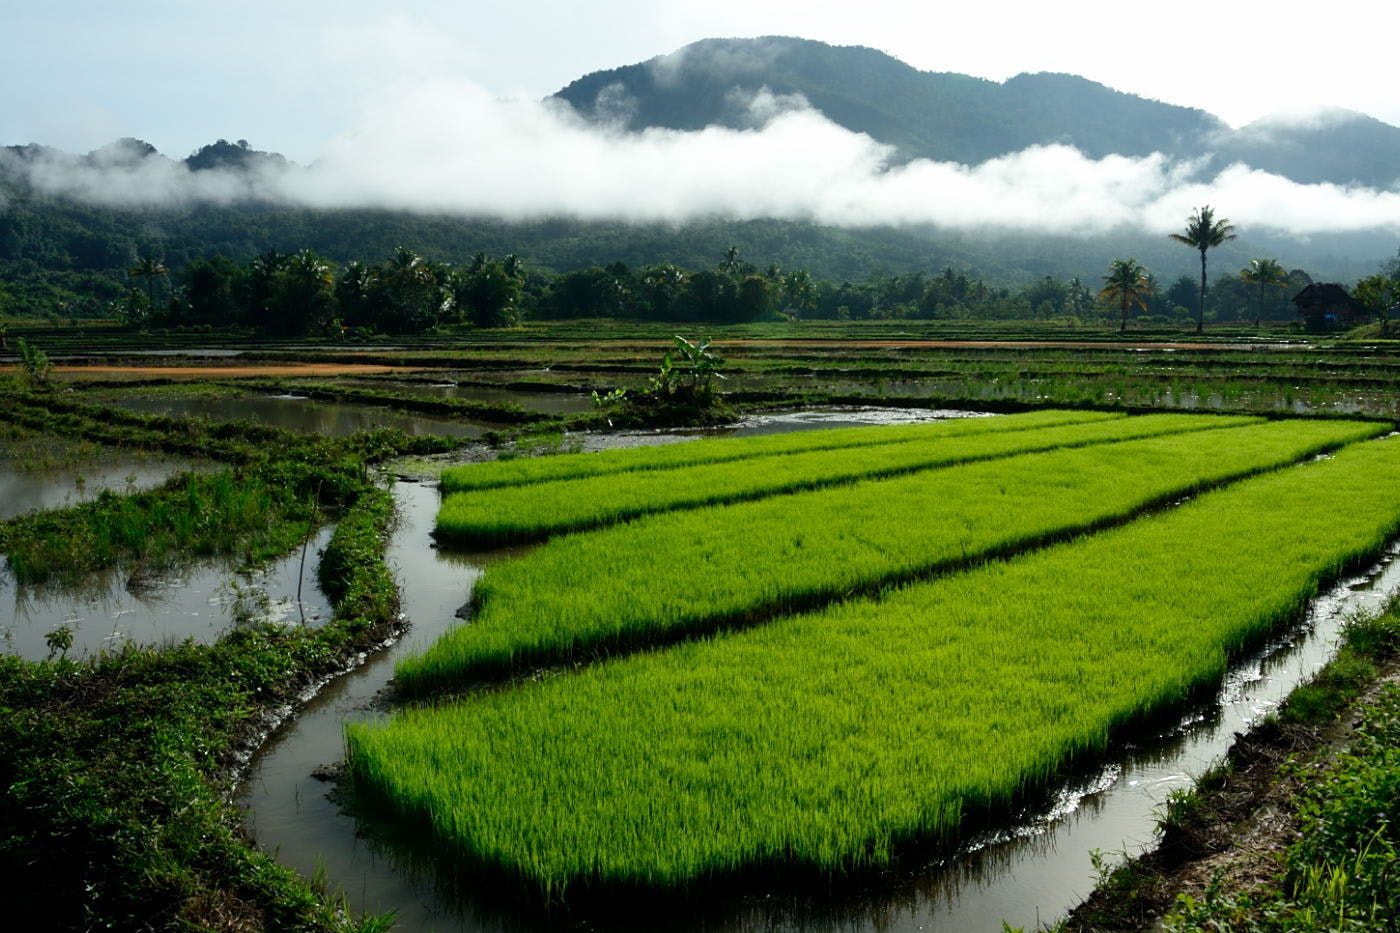 Photograph A Wonderful Morning at the Rice Field by heat larx on 500px